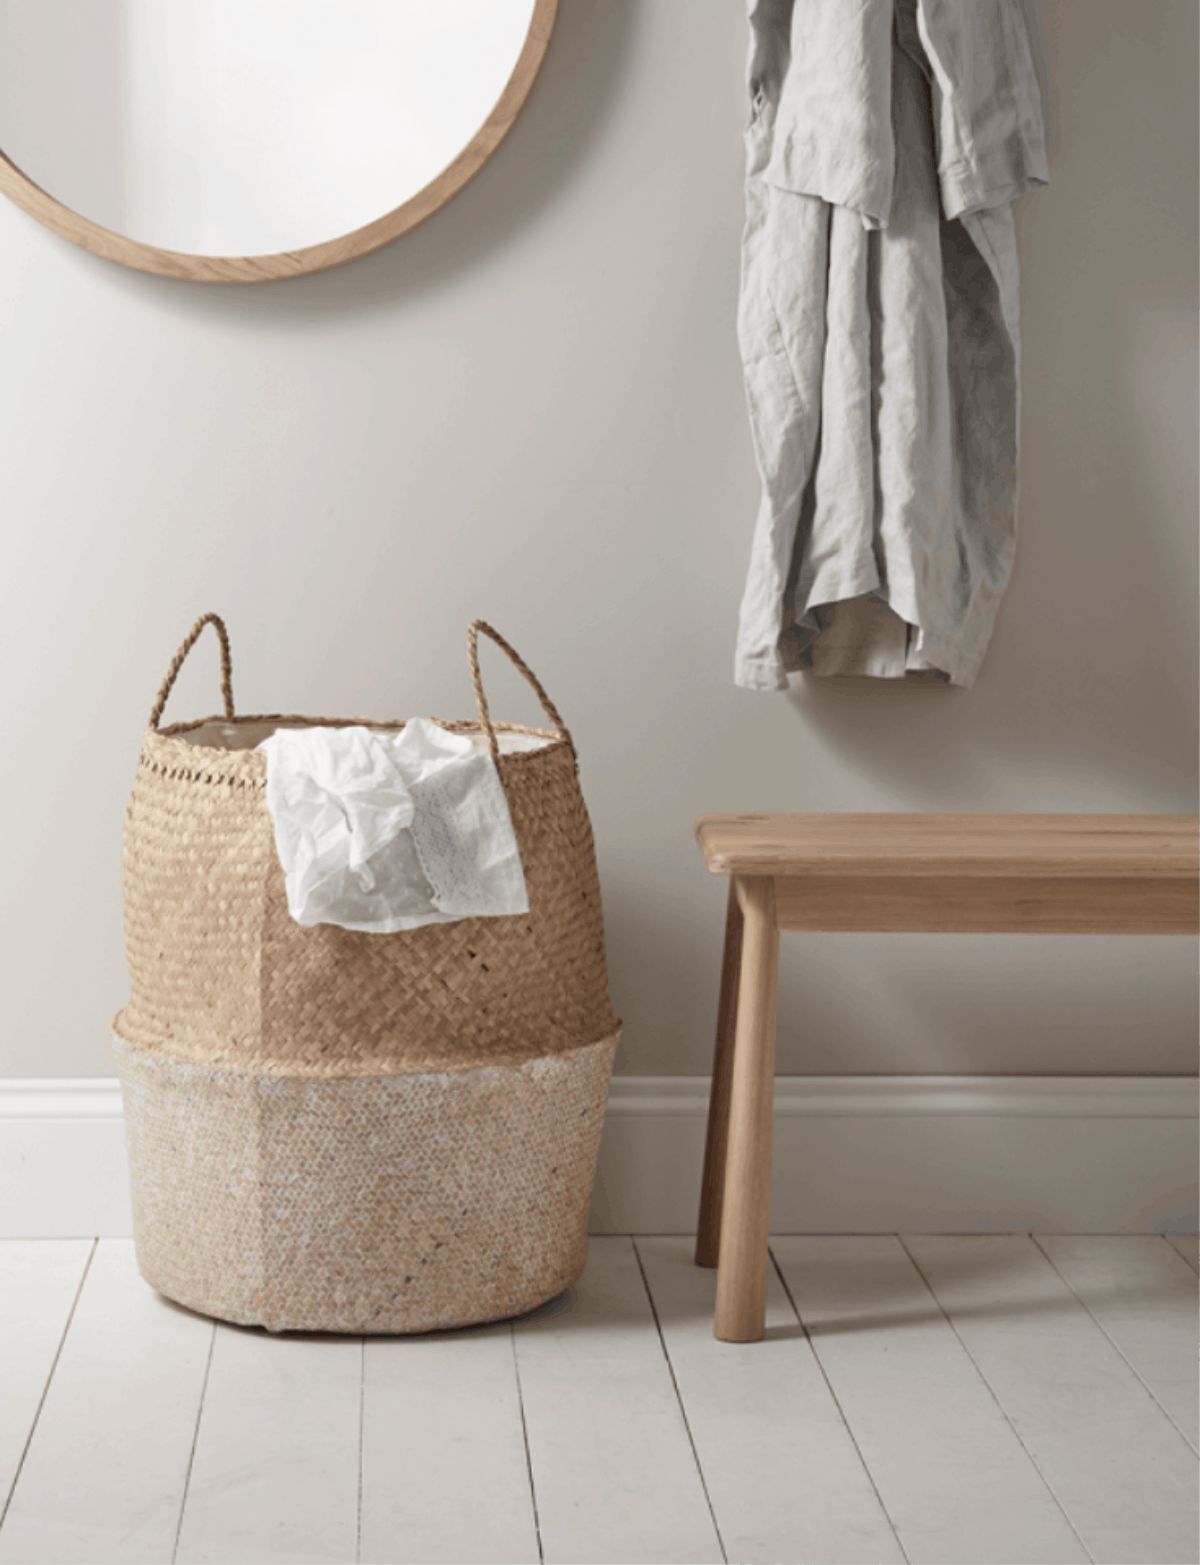 Personalising a bathroom with accesories